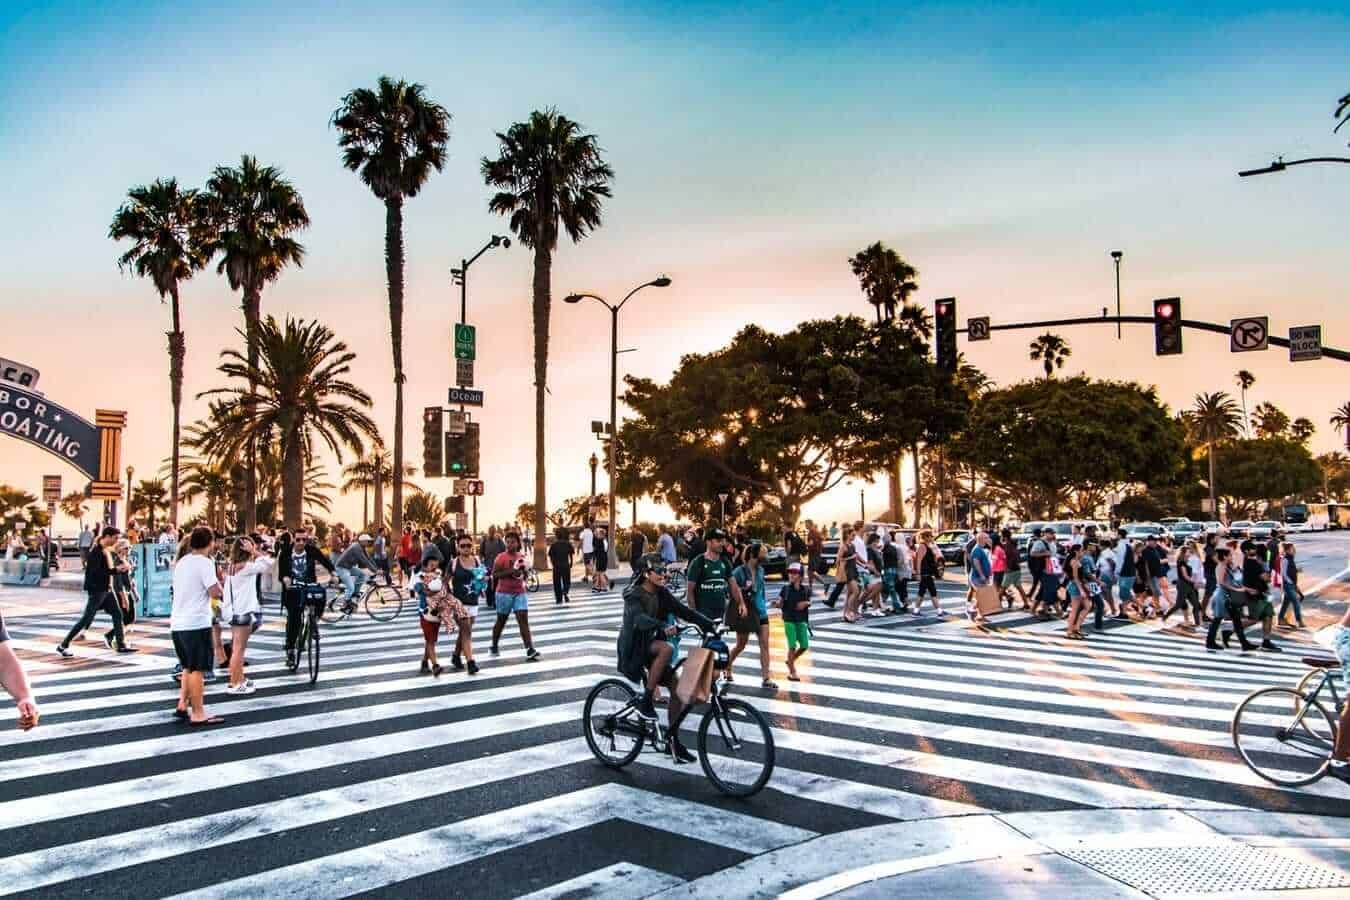 Crosswalk on Santa Monica boulevard, Los Angeles